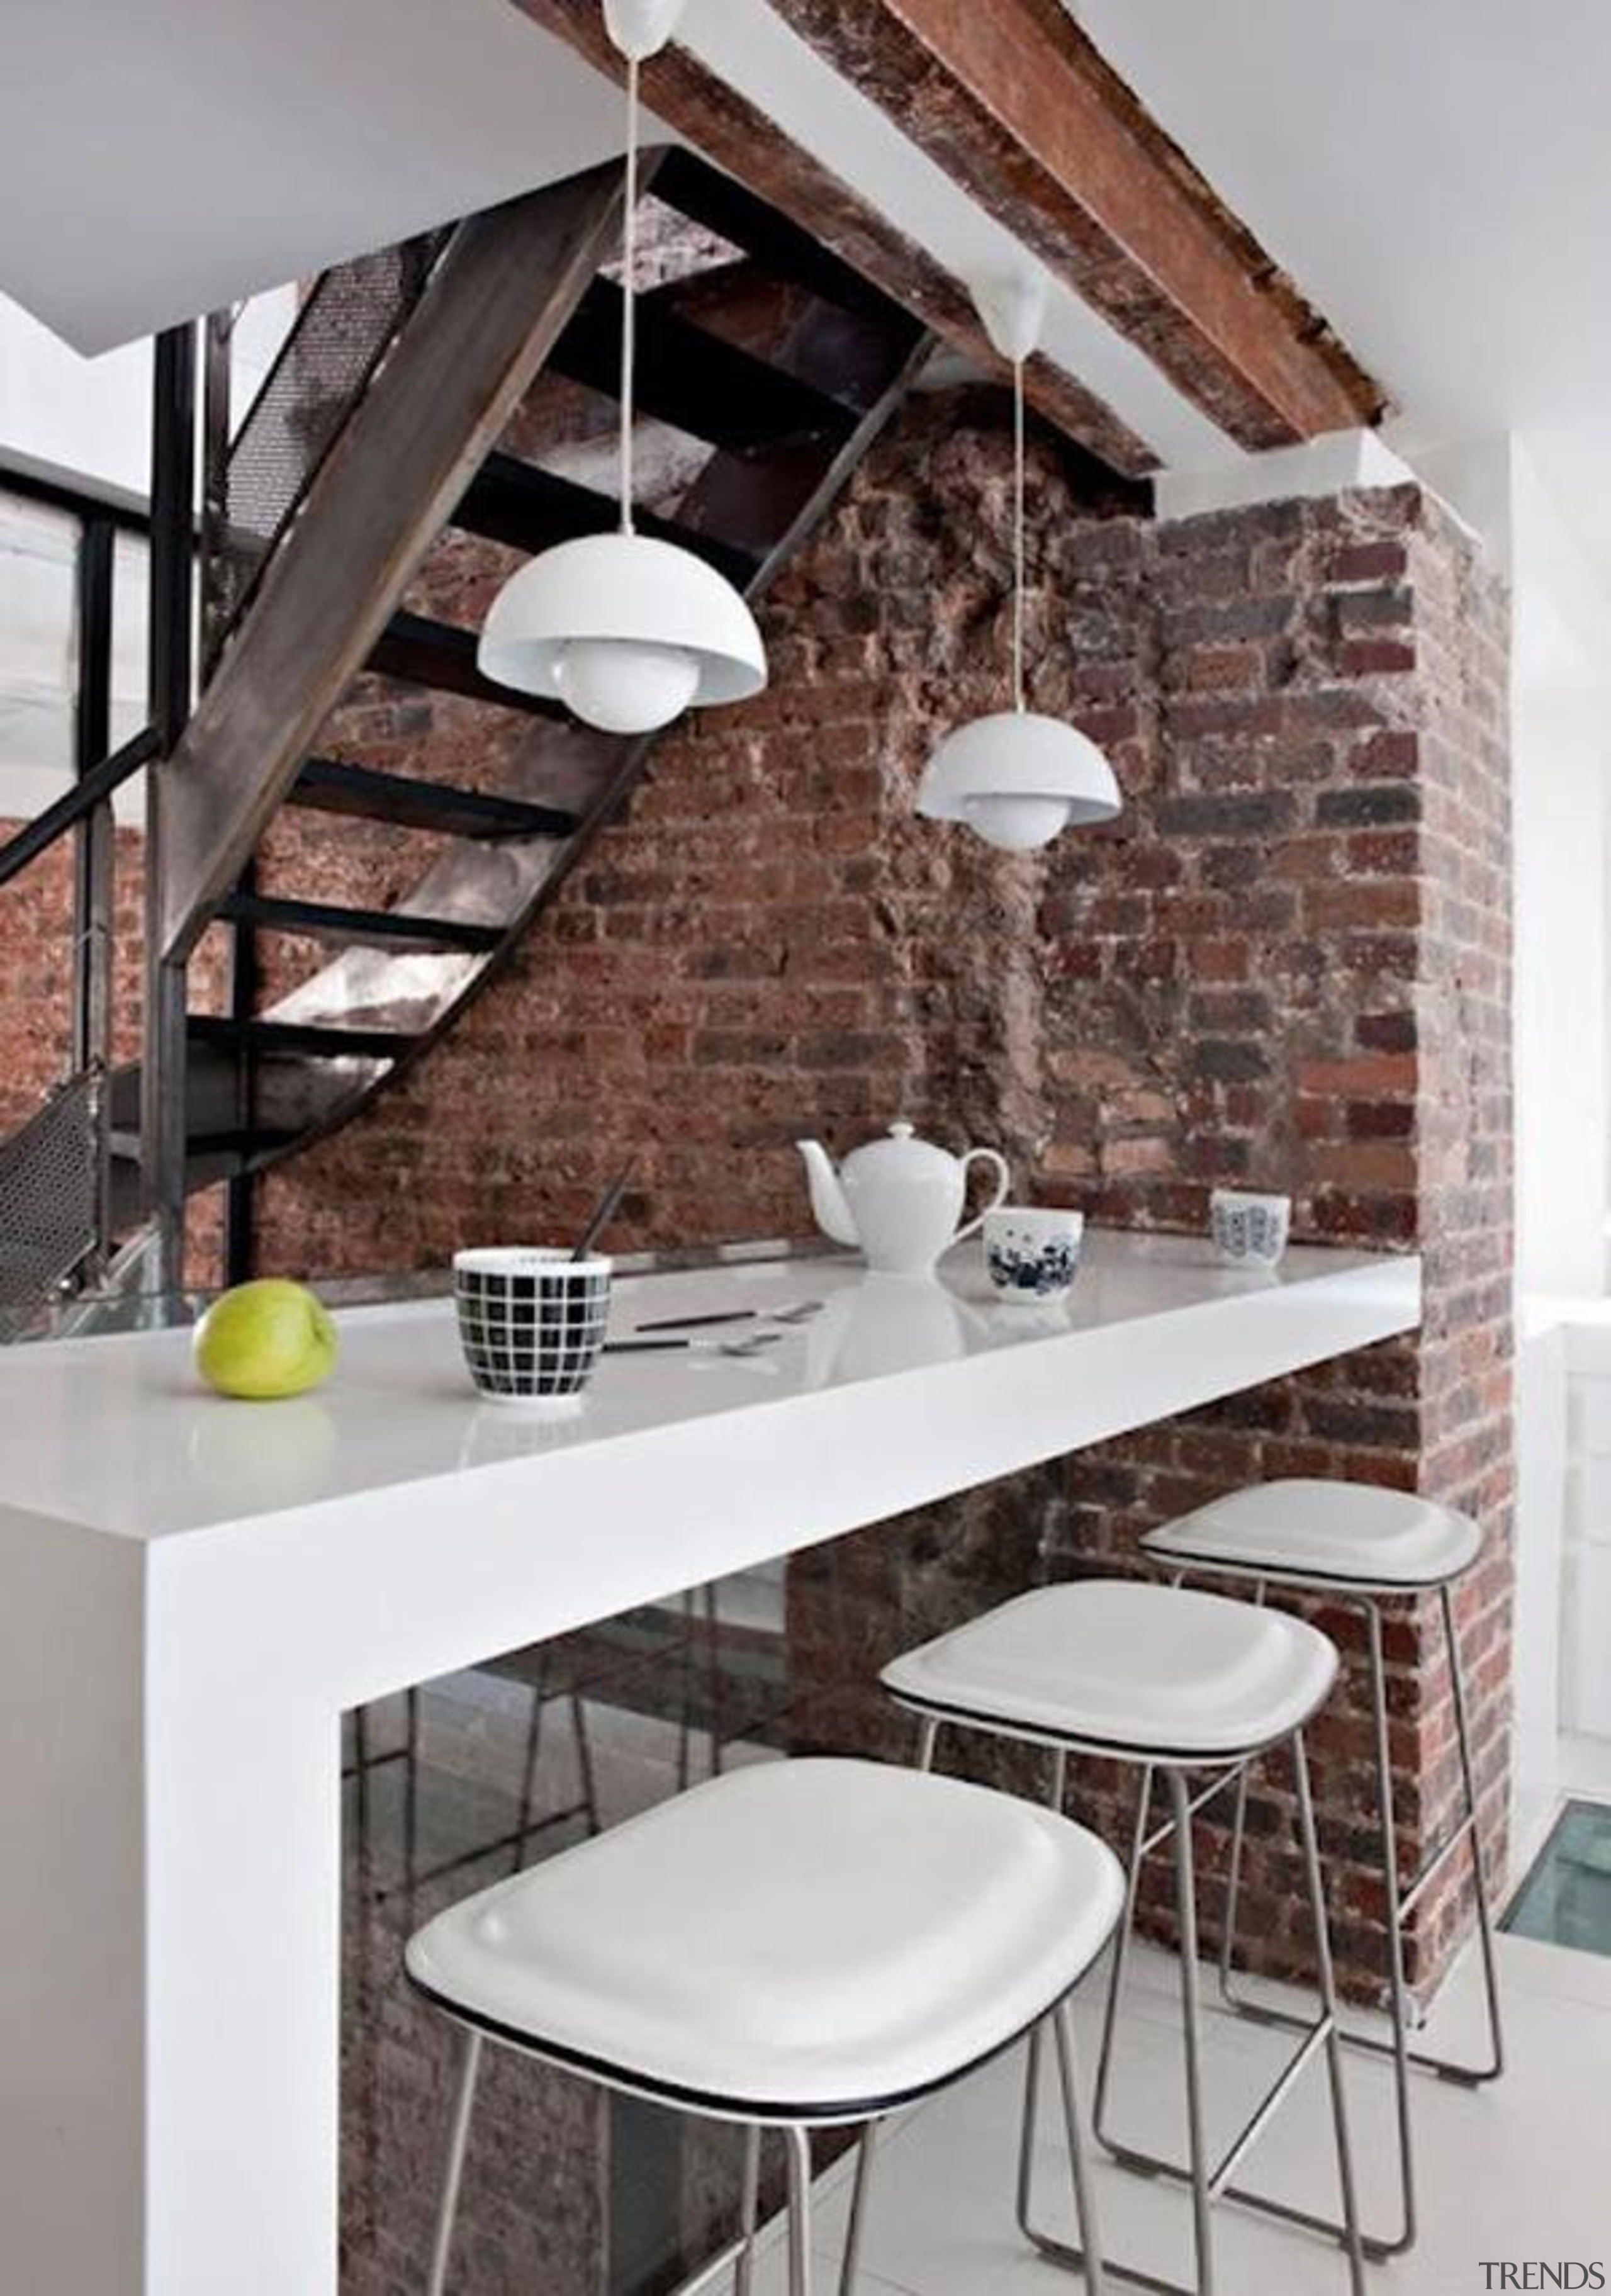 Start a myTrends ProjectCreate an ideas hub for countertop, furniture, interior design, kitchen, table, gray